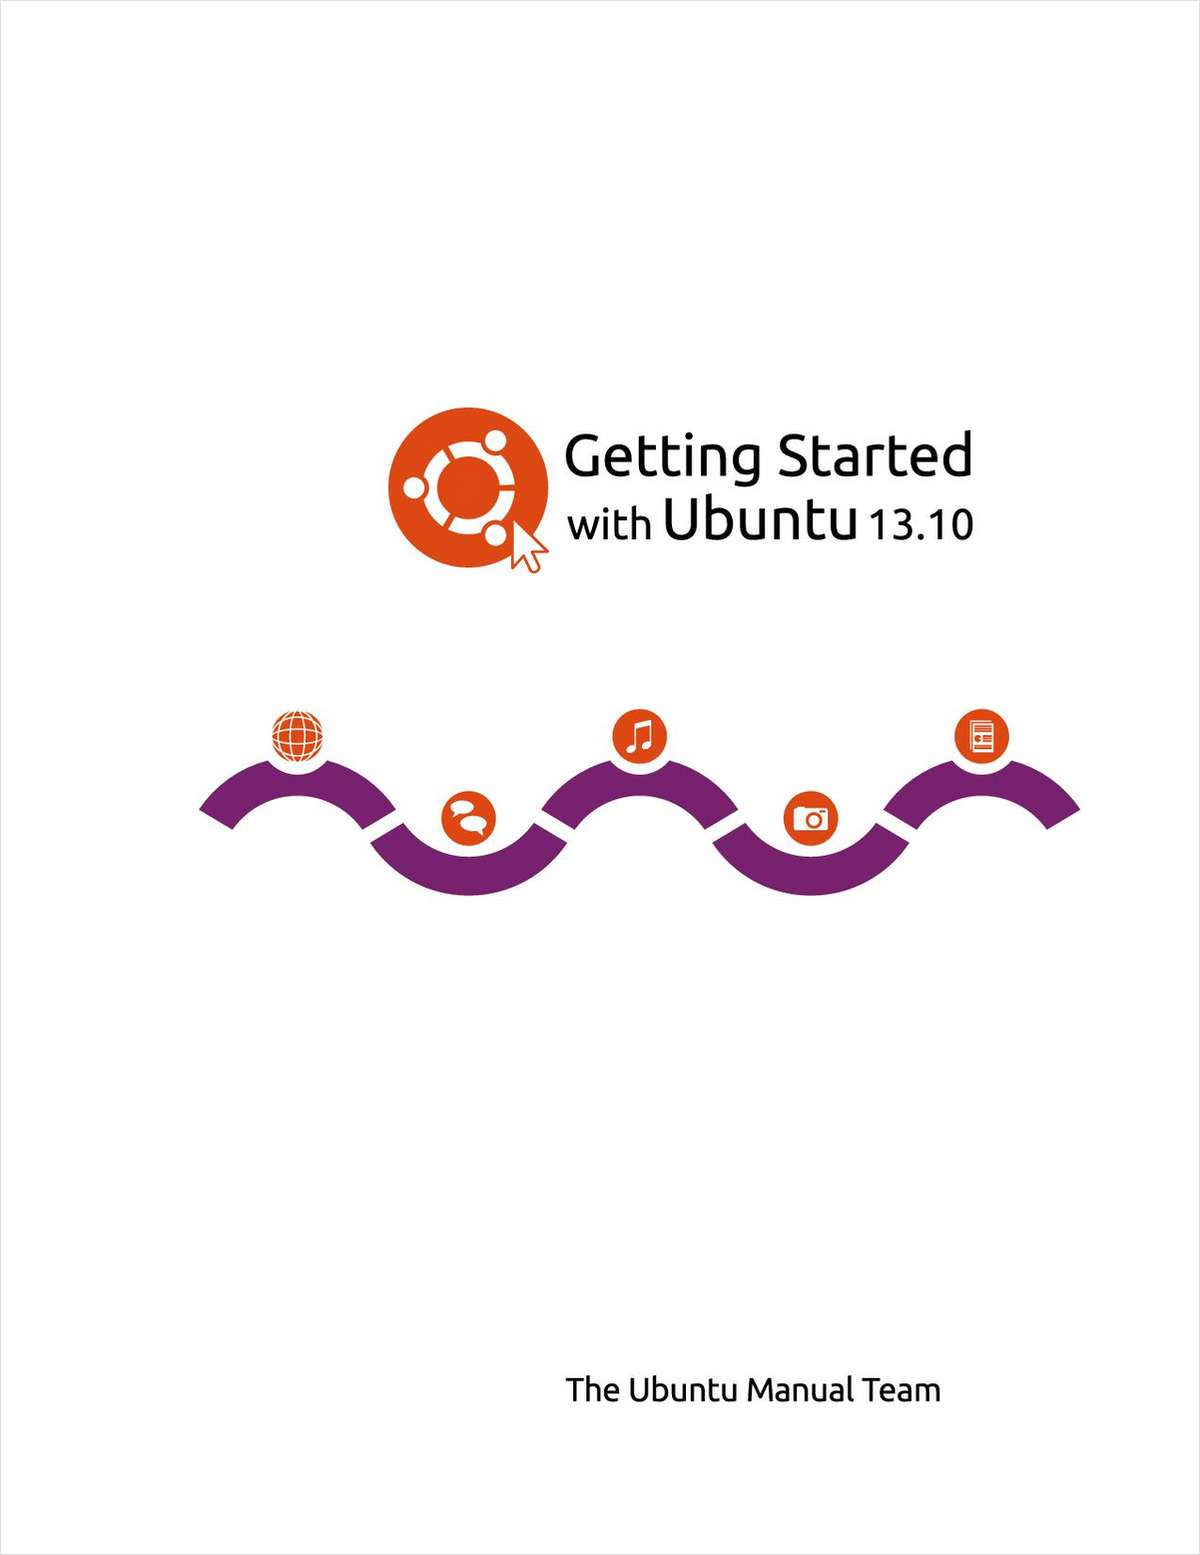 Getting Started With Ubuntu 13.10